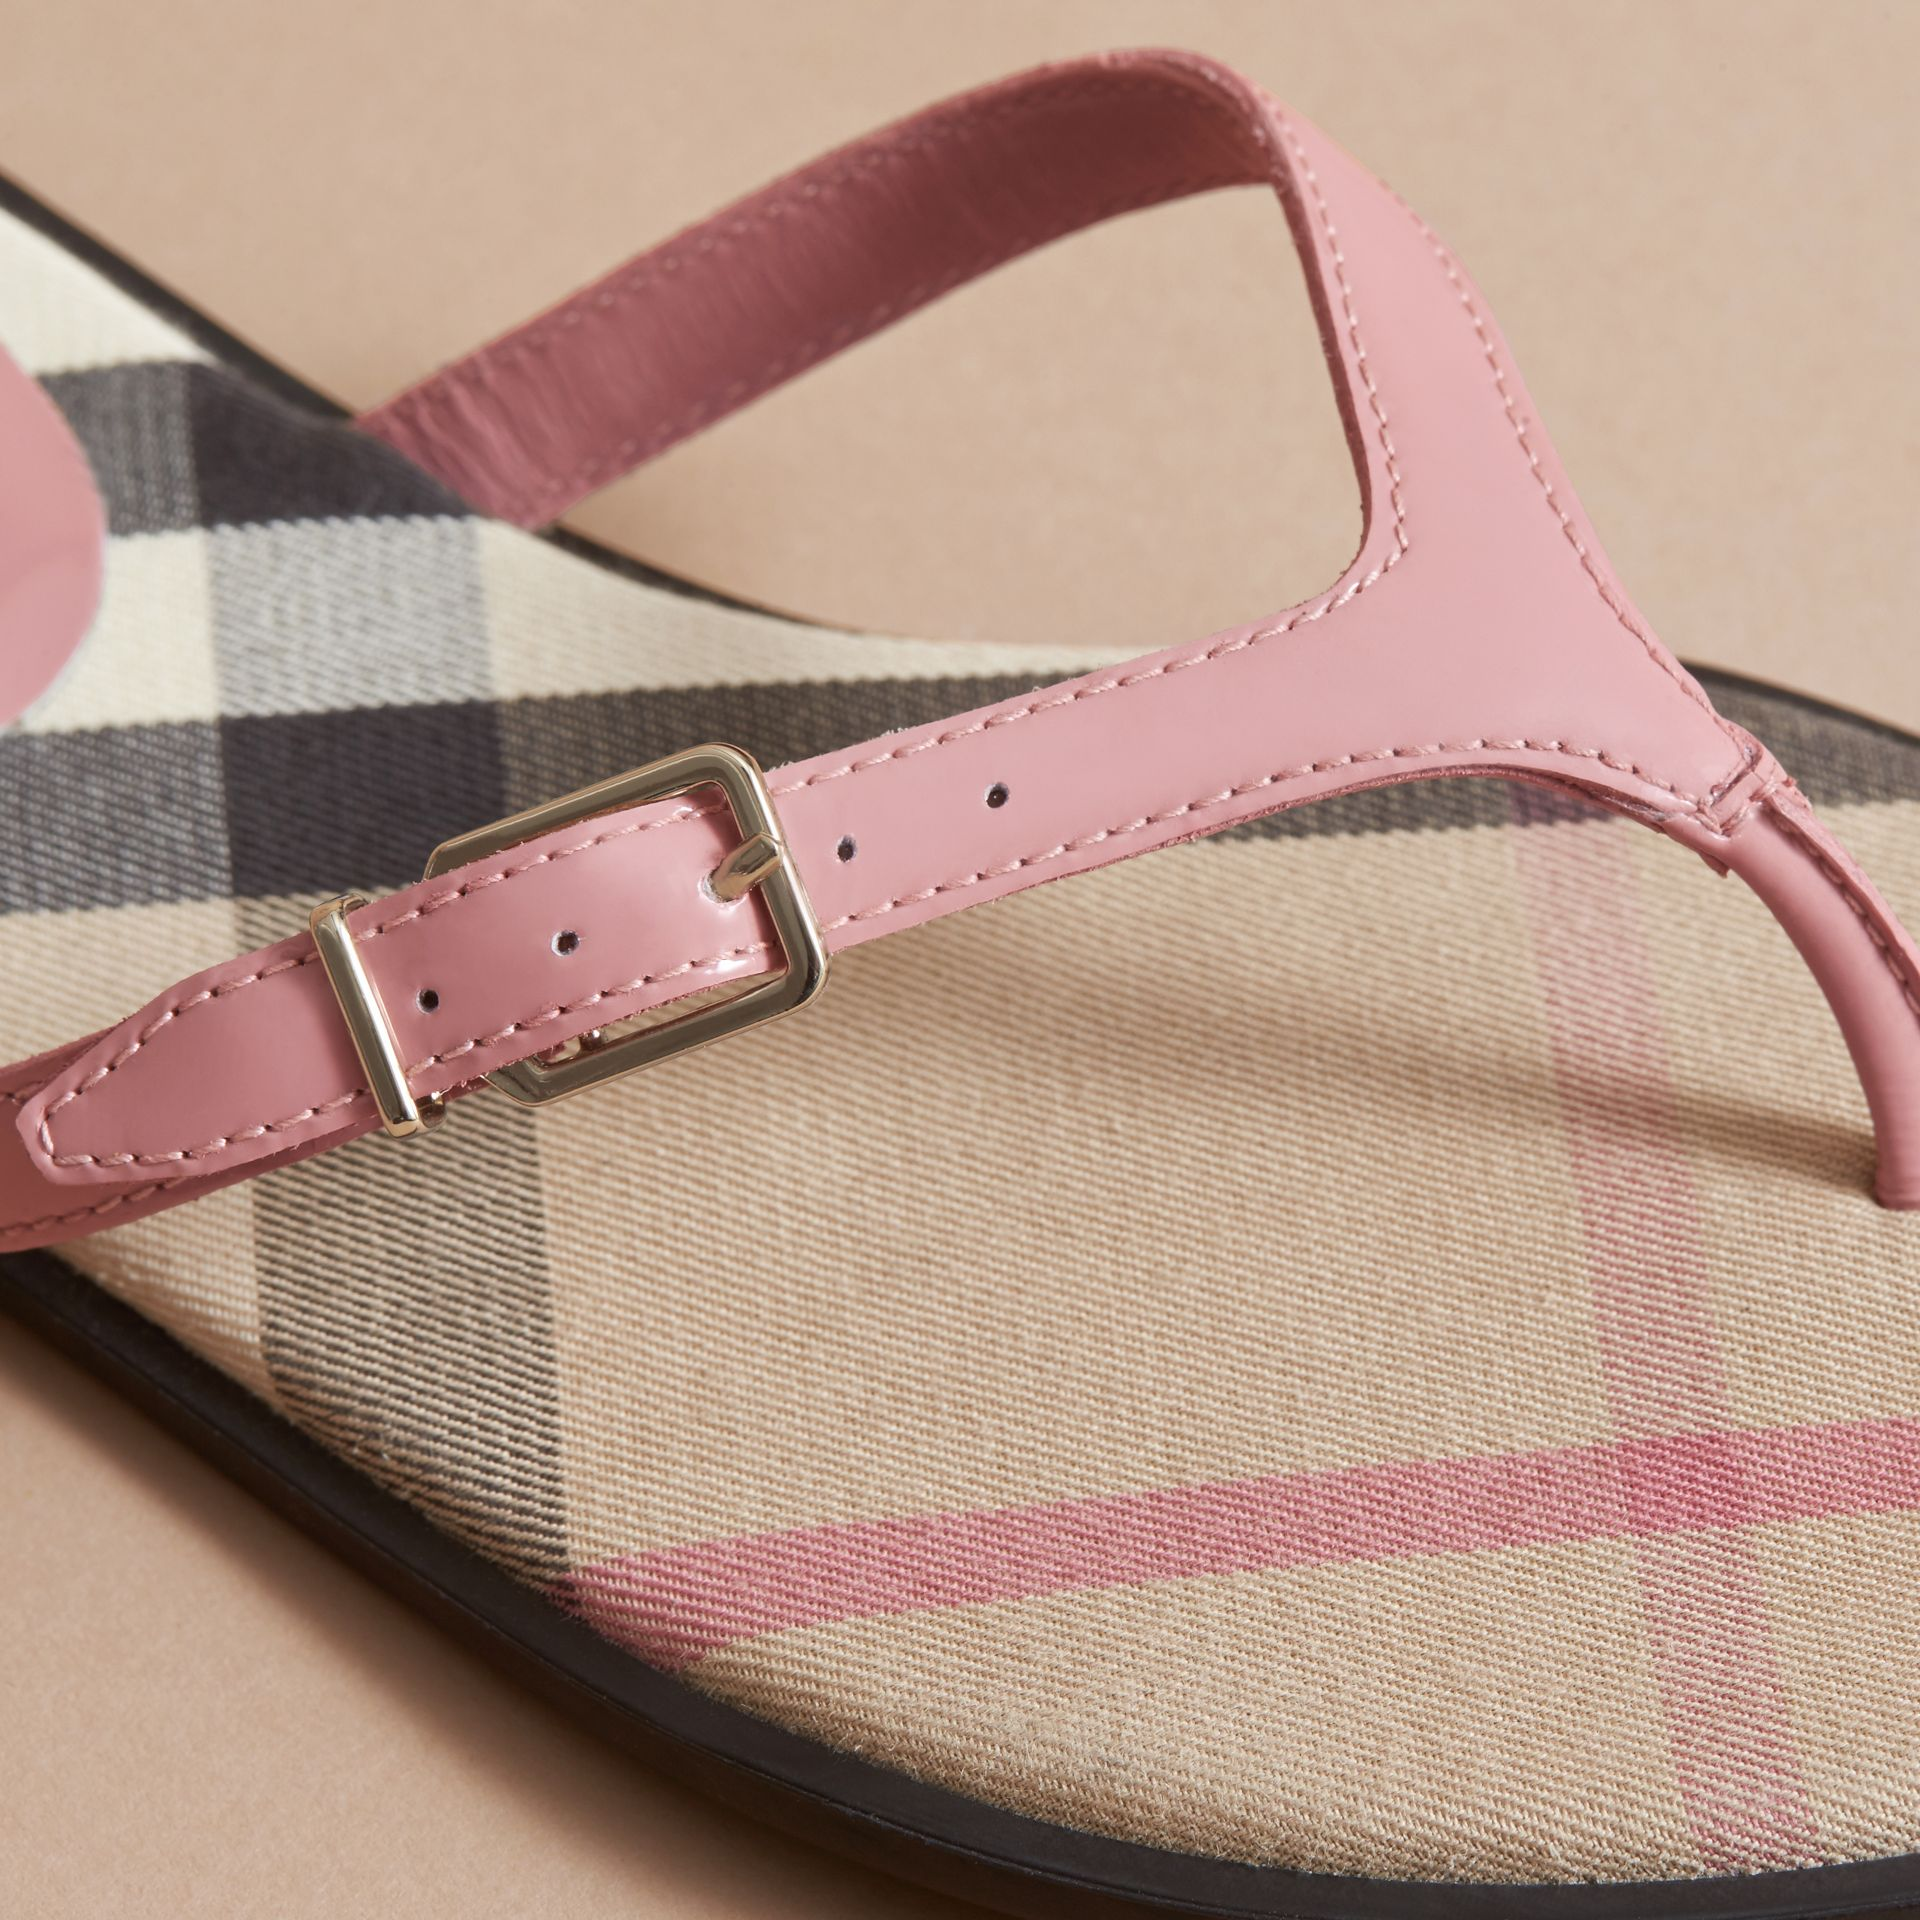 House Check and Patent Leather Sandals in Nude Pink - Women | Burberry Singapore - gallery image 2